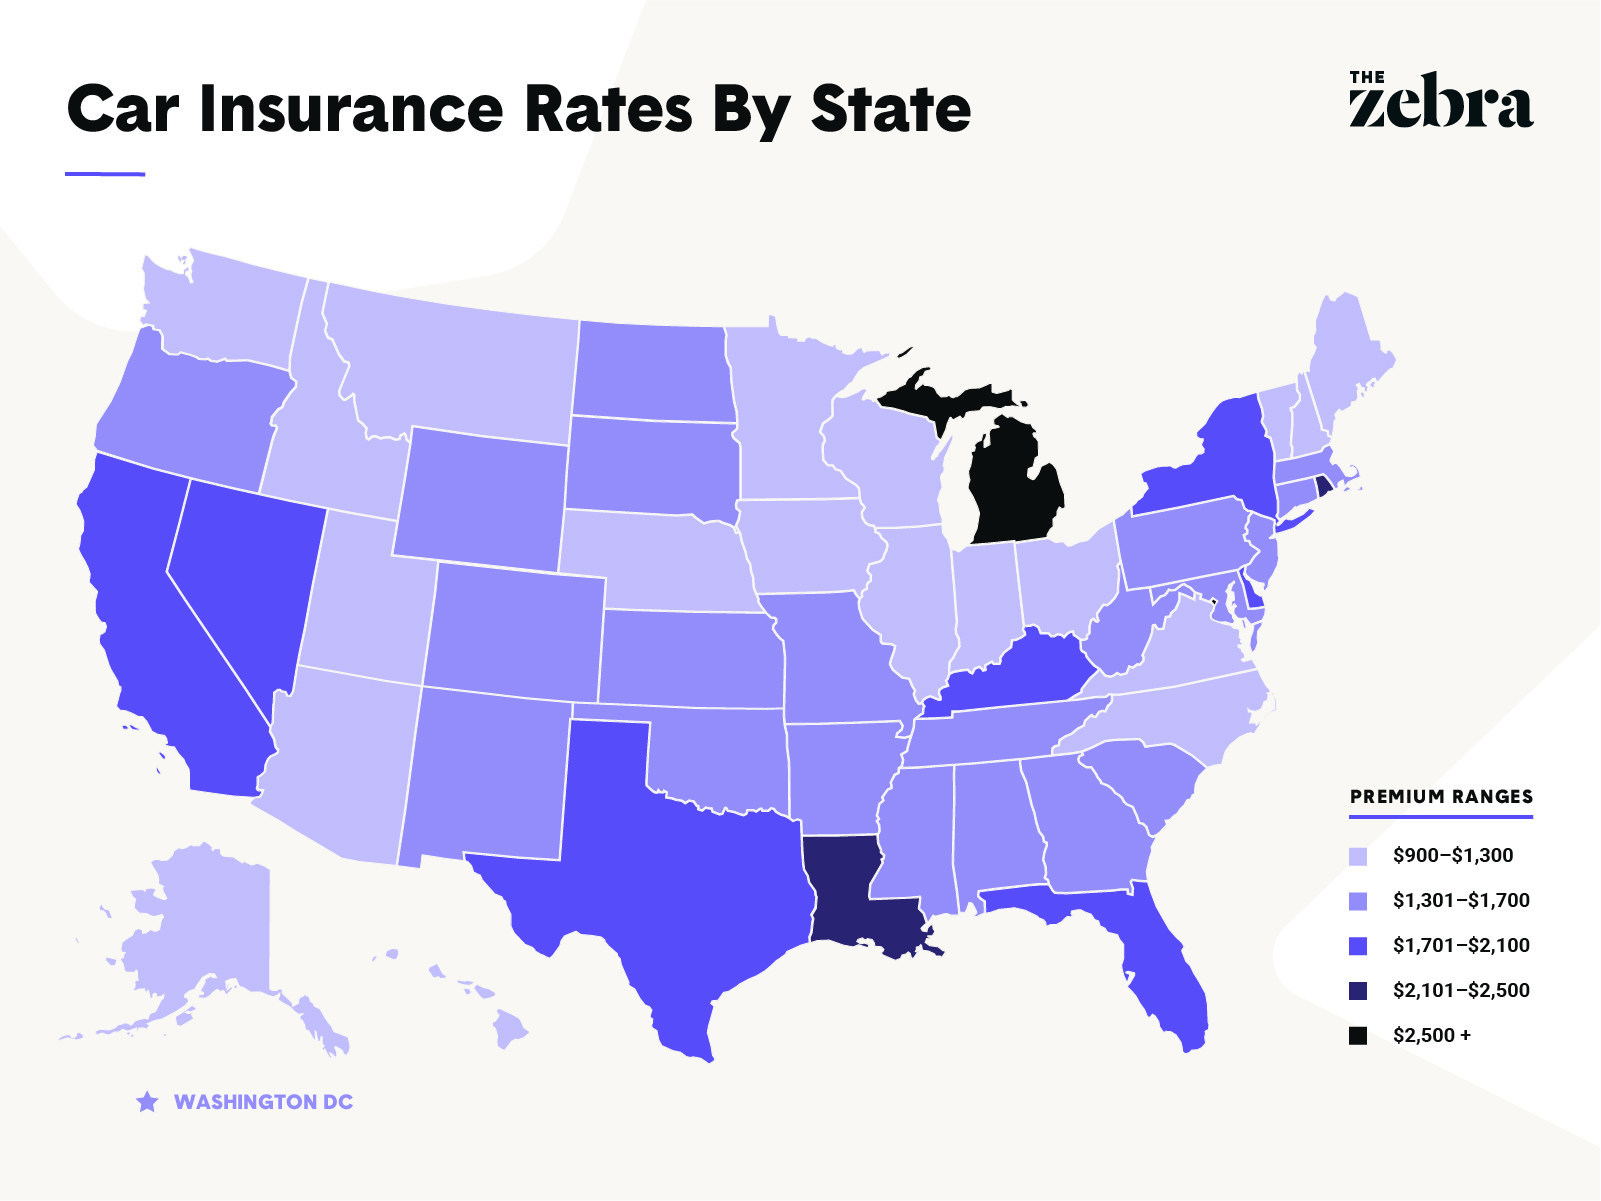 Car Insurance Rates on the Rise for 83% of U.S. Drivers